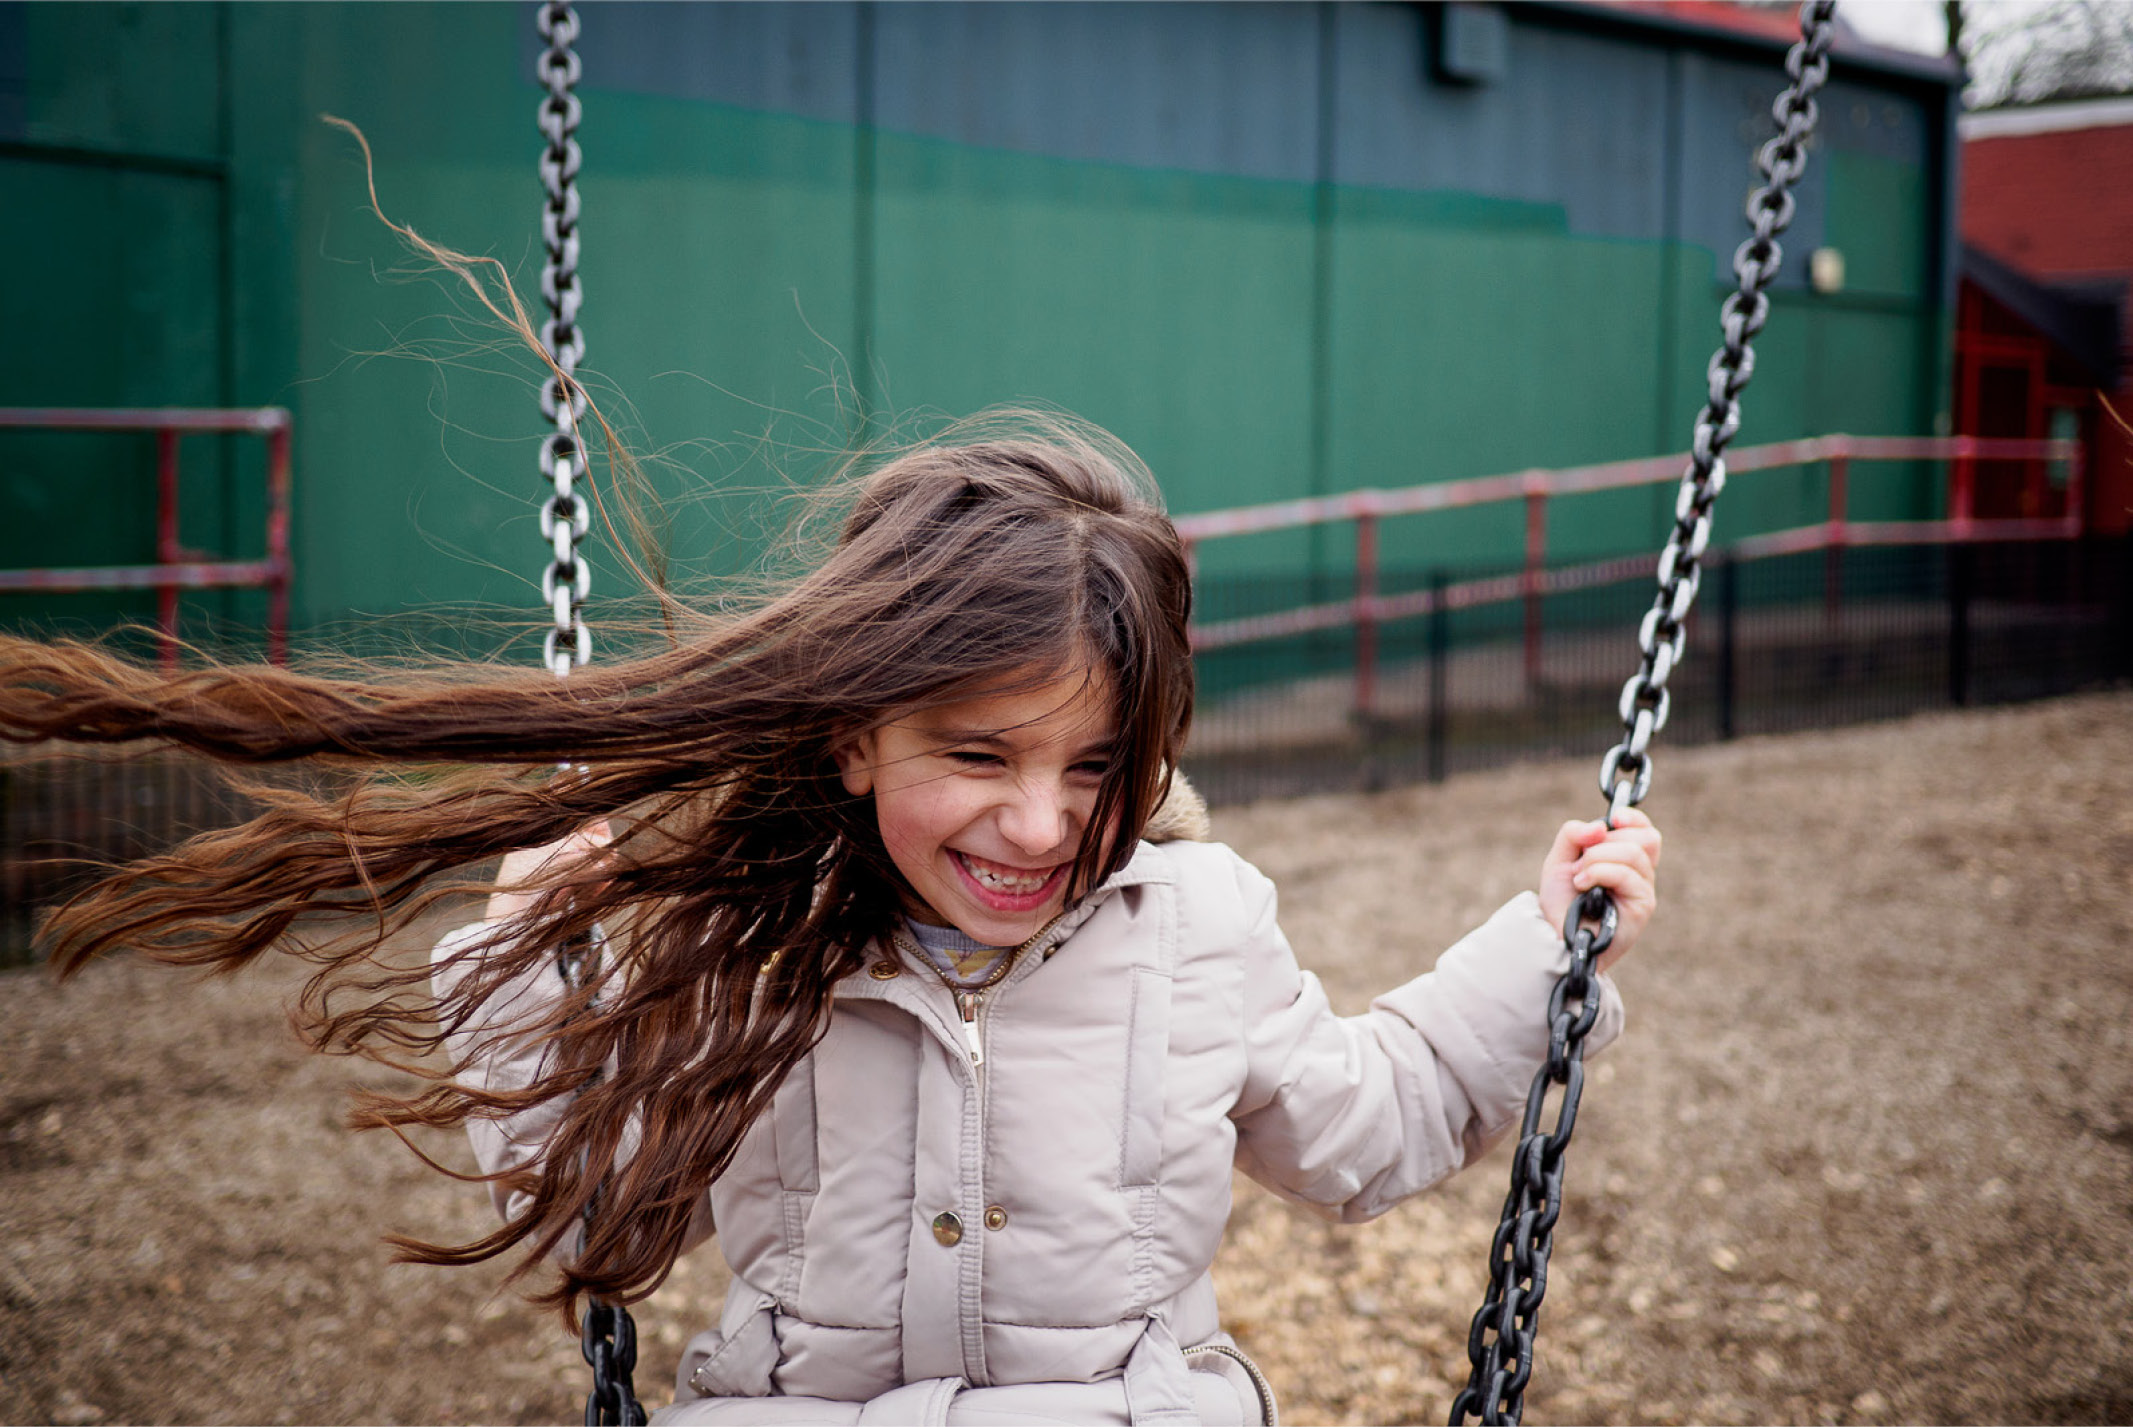 Little girl on a swing smiling happily in Tooting Common